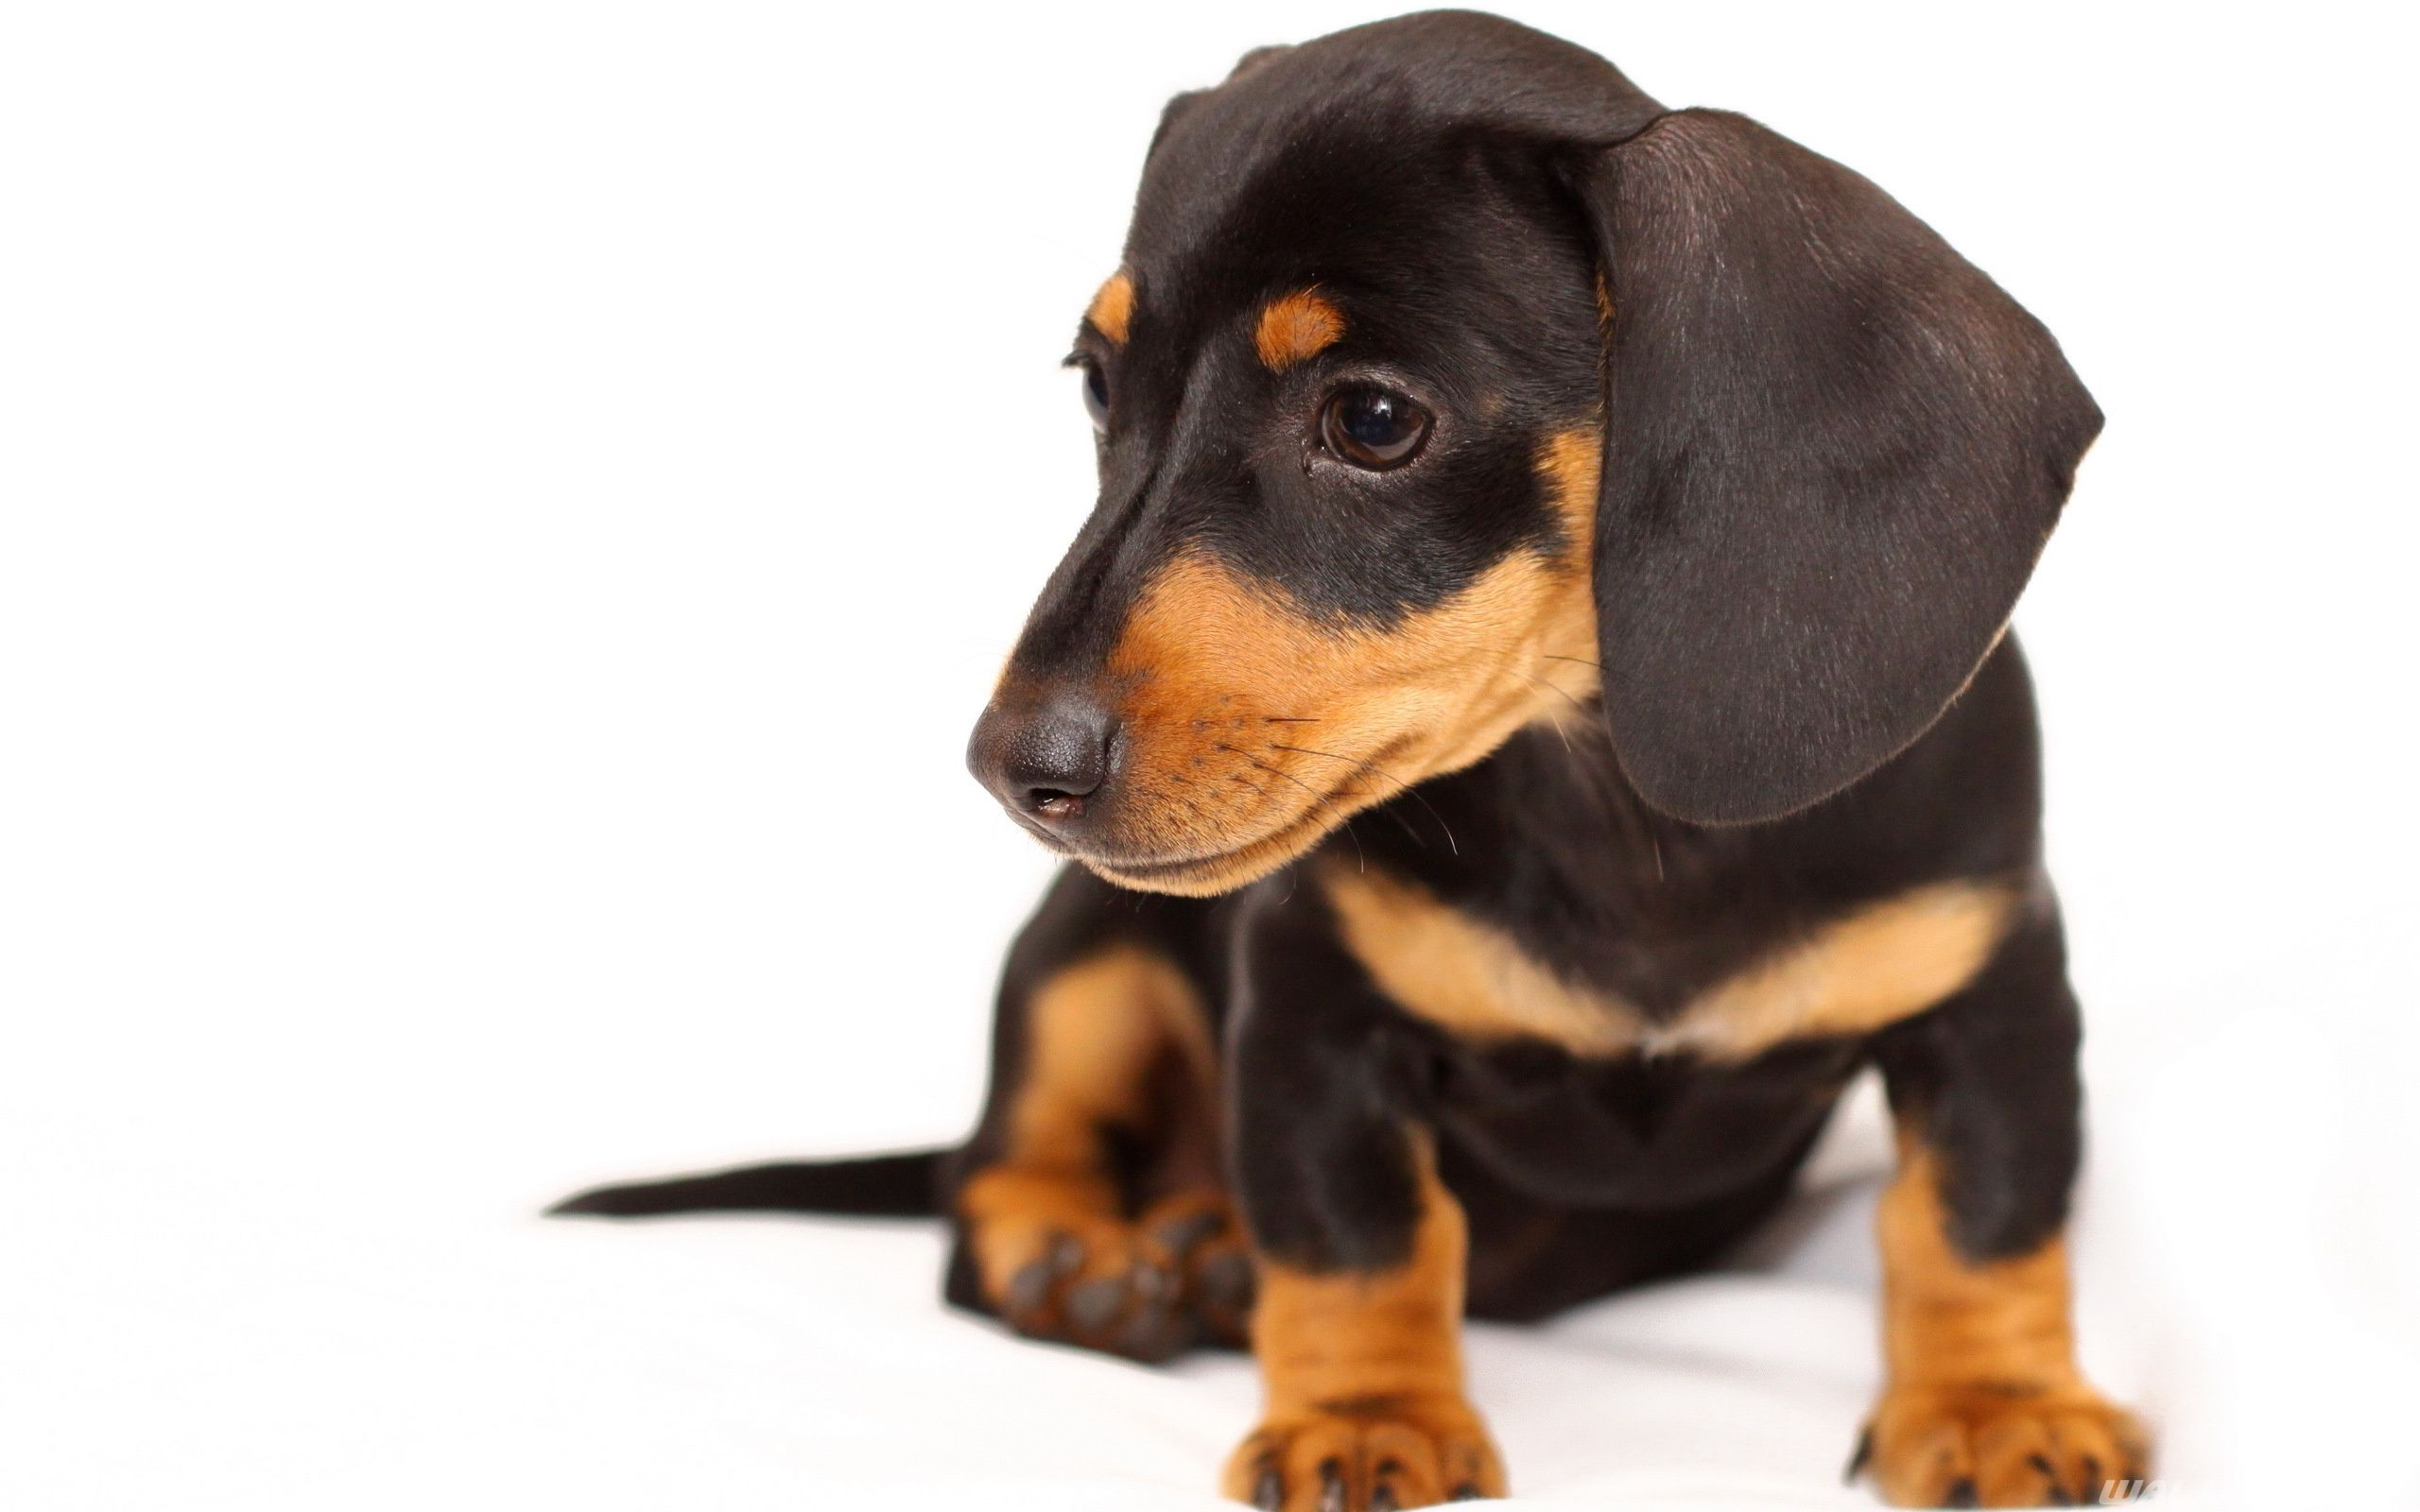 Doxie Puppy Wallpaper Dachshund Puppies Doxie Puppies